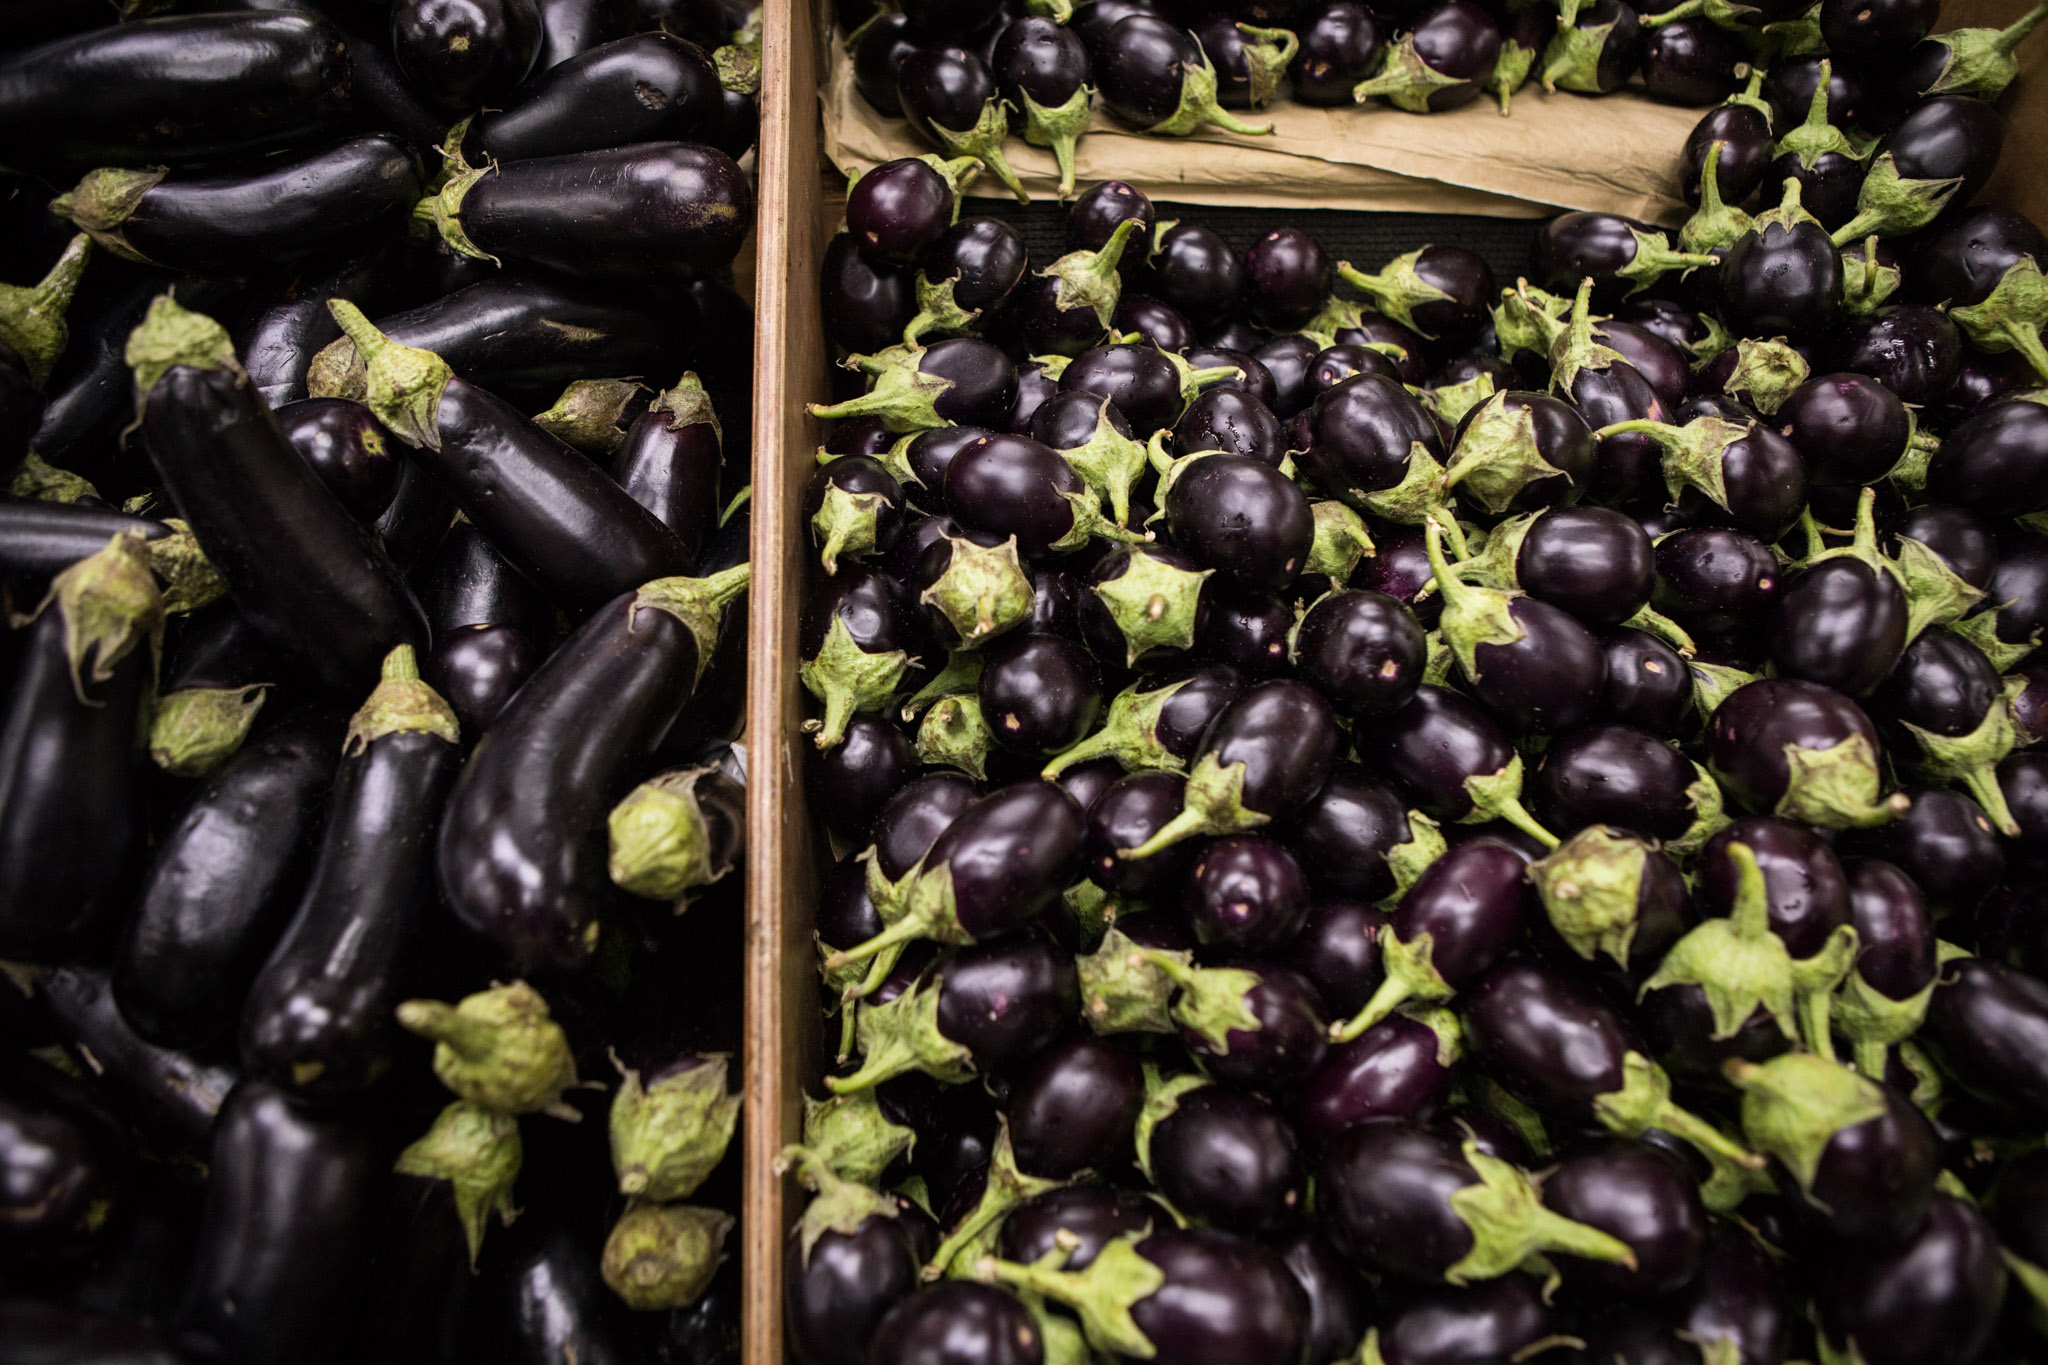 Ali Baba International Food Market offers many different varieties of eggplant, including (from left) Italian eggplant and Indian eggplant.